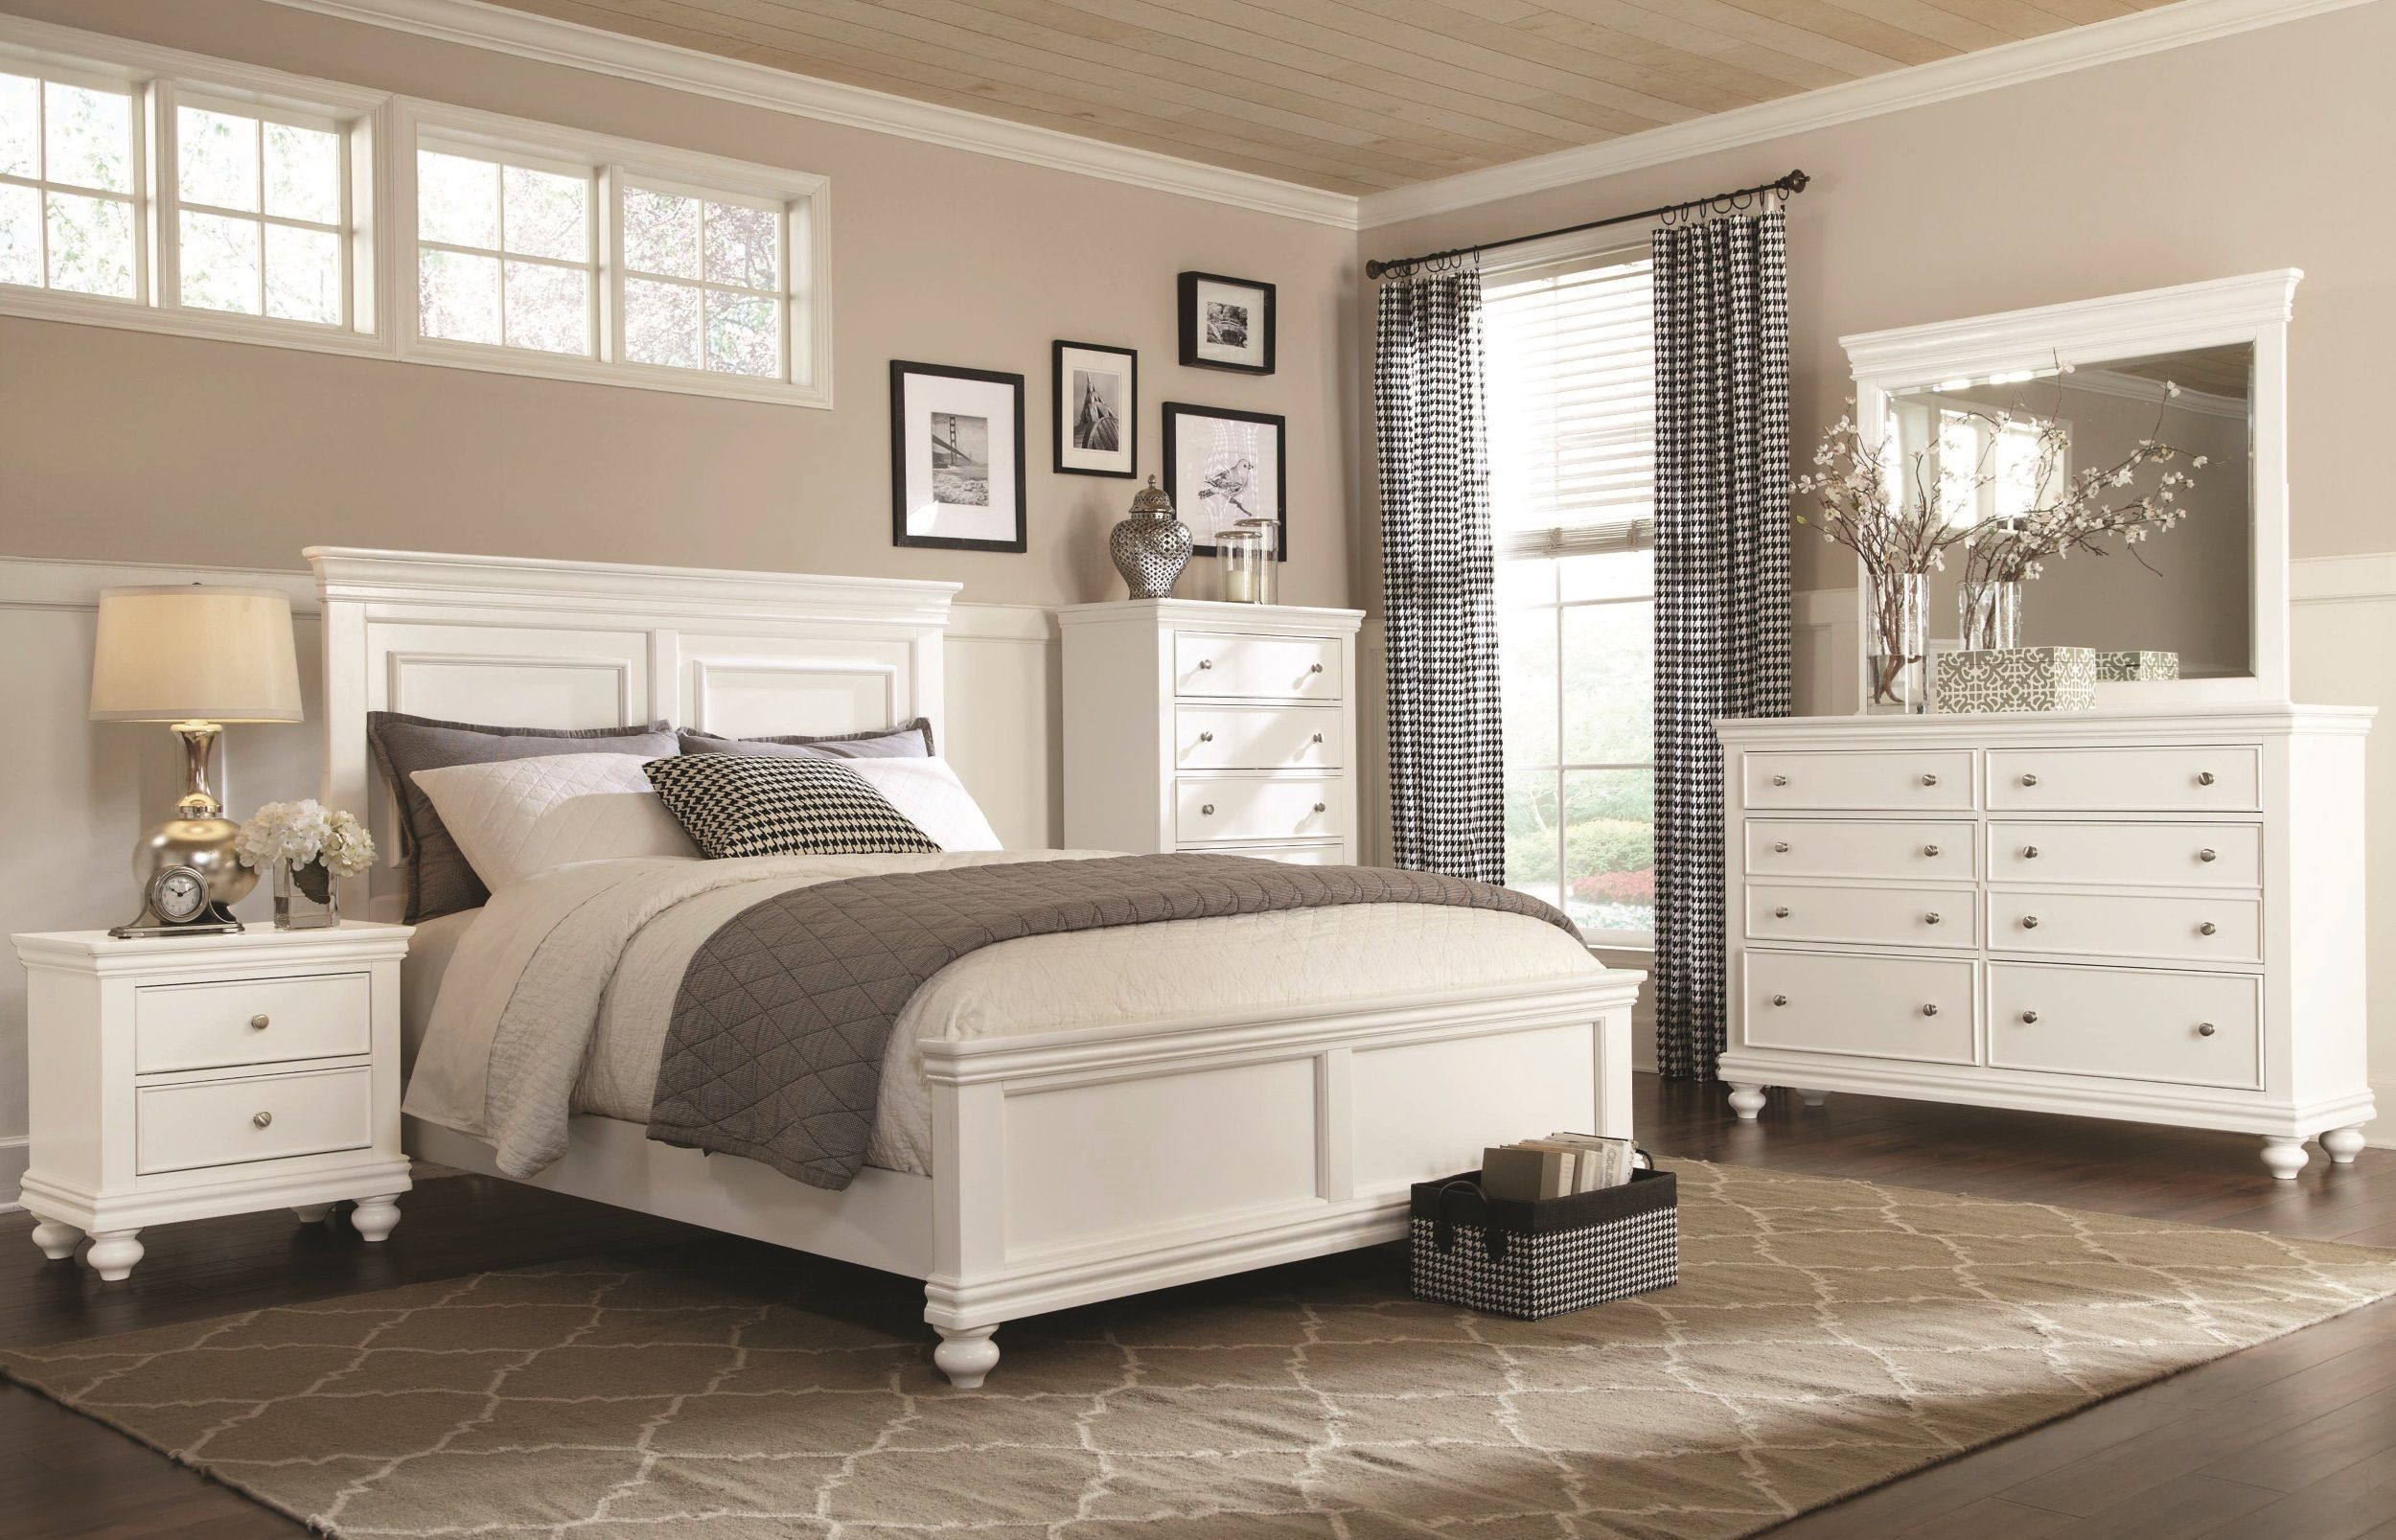 Master bedroom layout  Cool Bedroom Layout Ideas You Will Love  Teen bedroom layout